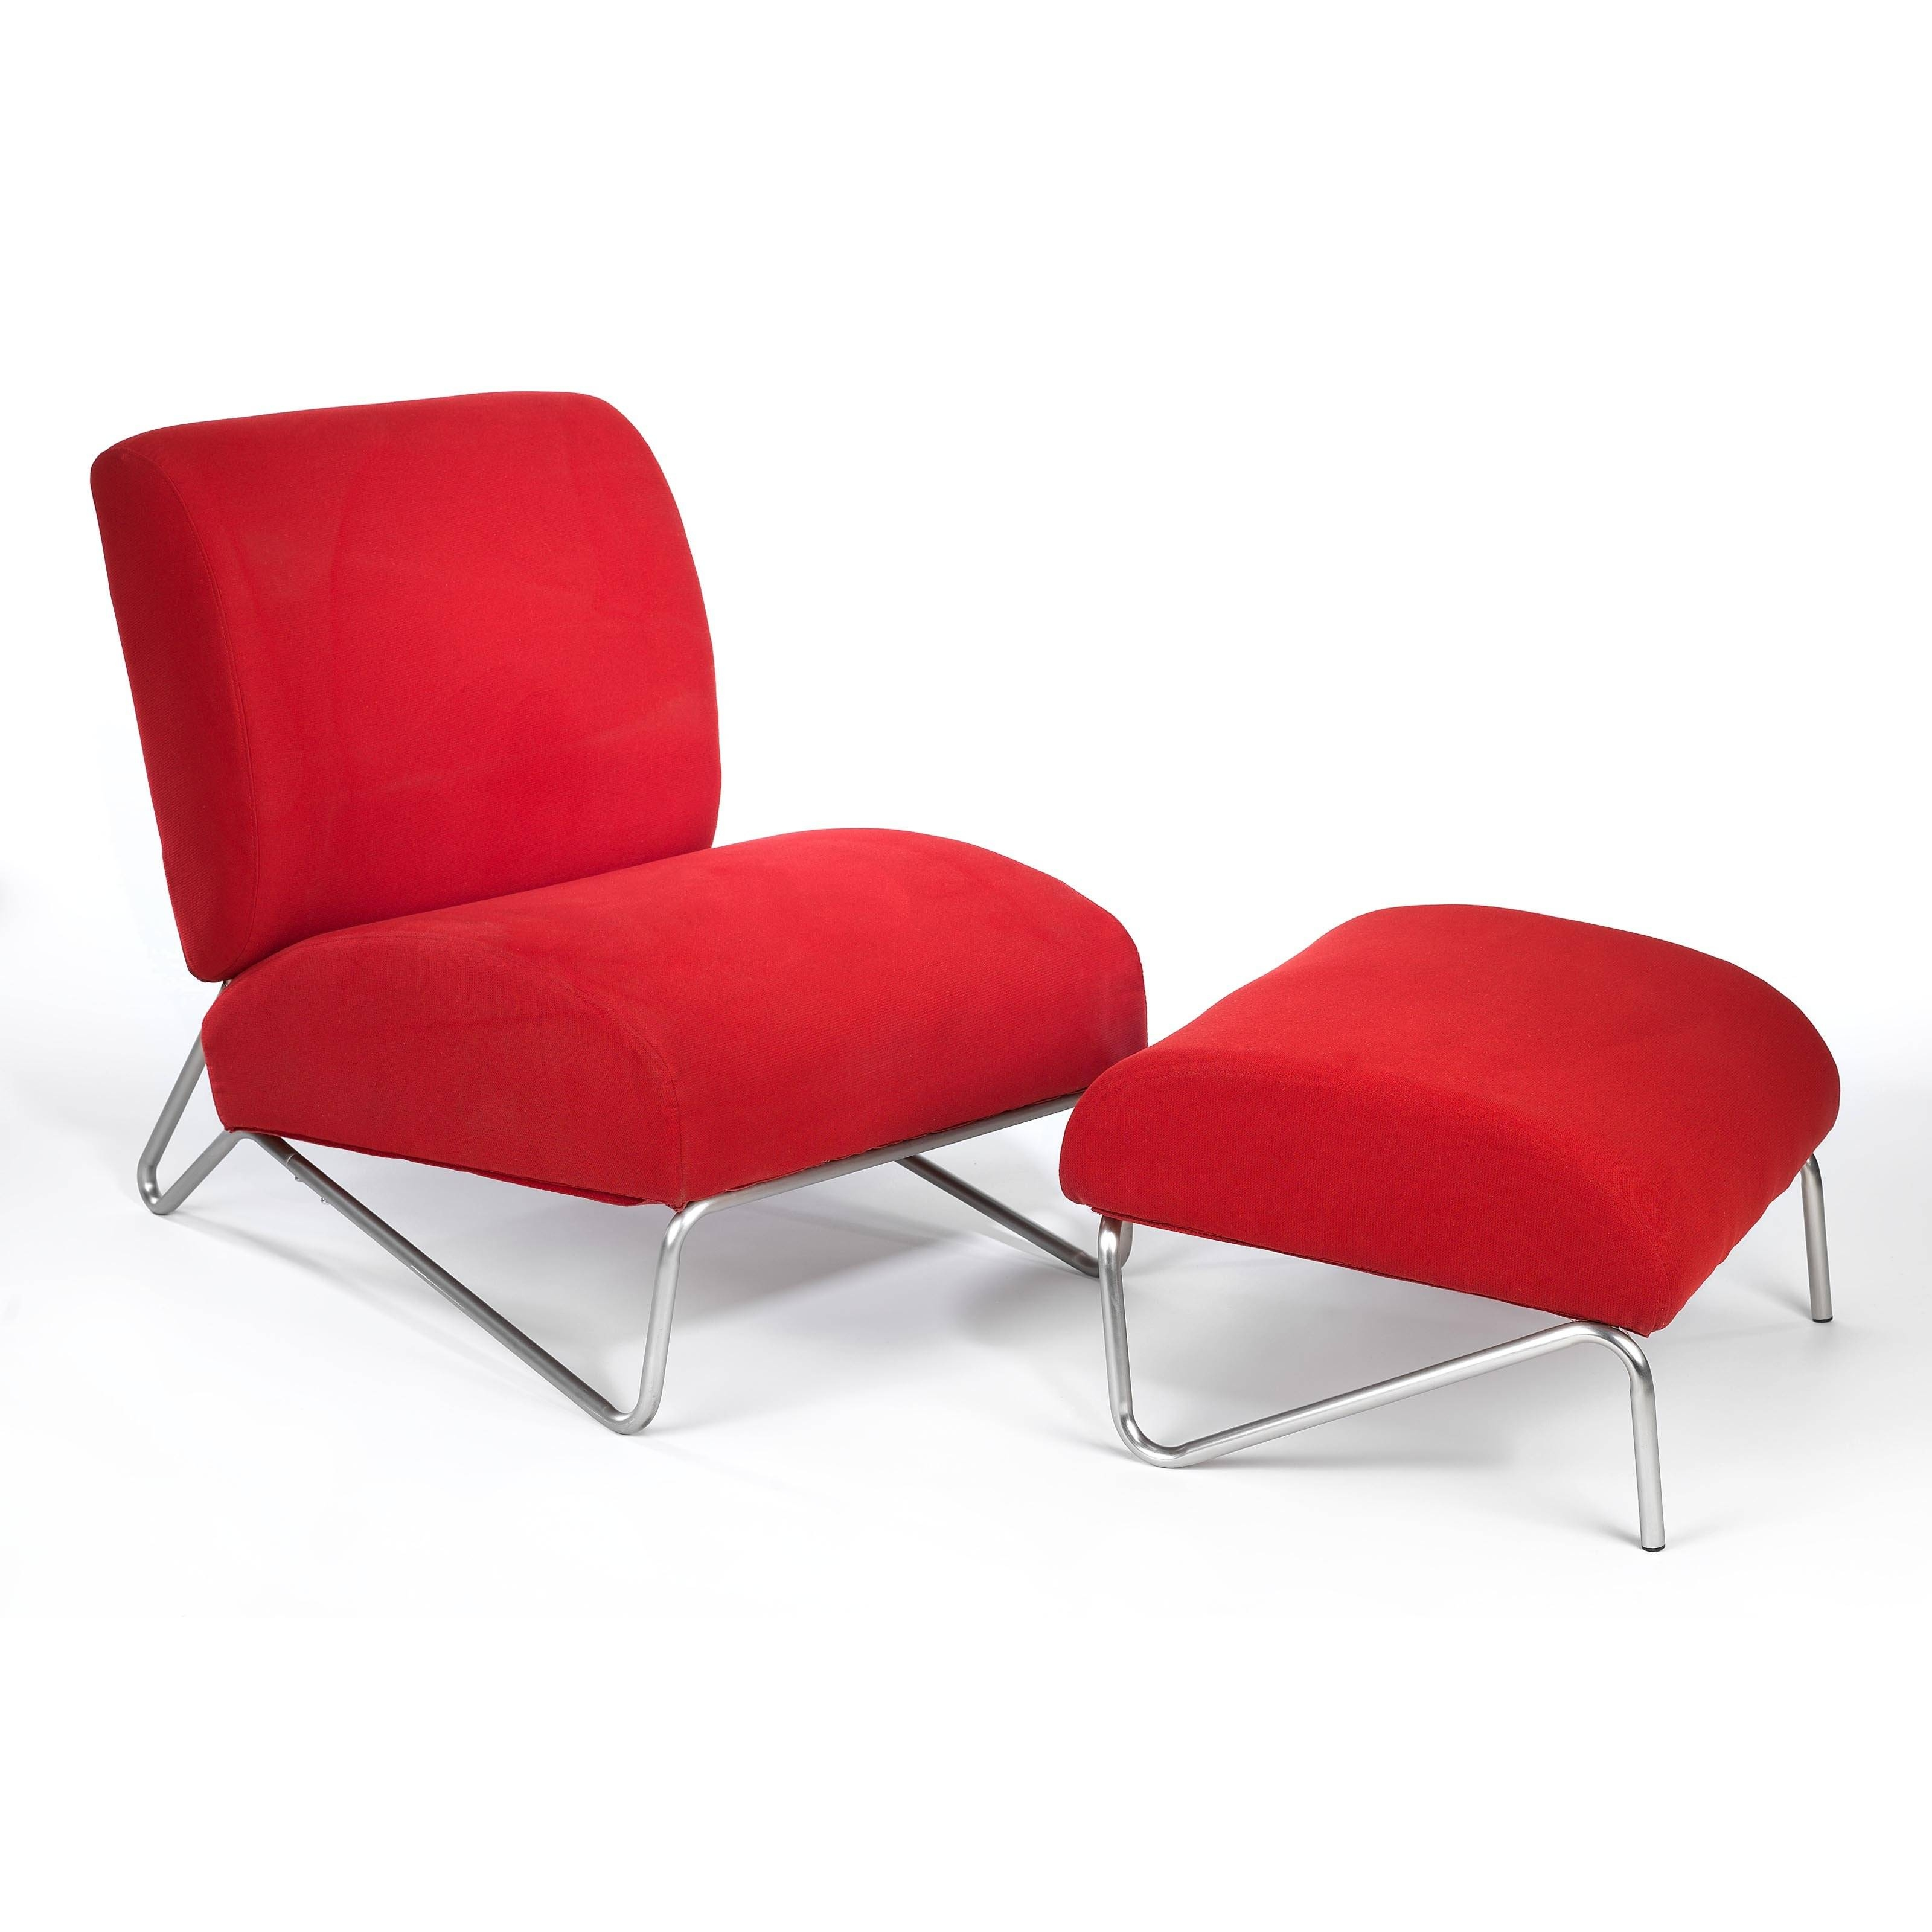 Contemporary Furniture Chairs, Contemporary Furniture Chairs with Contemporary Sofas And Chairs (Image 4 of 15)